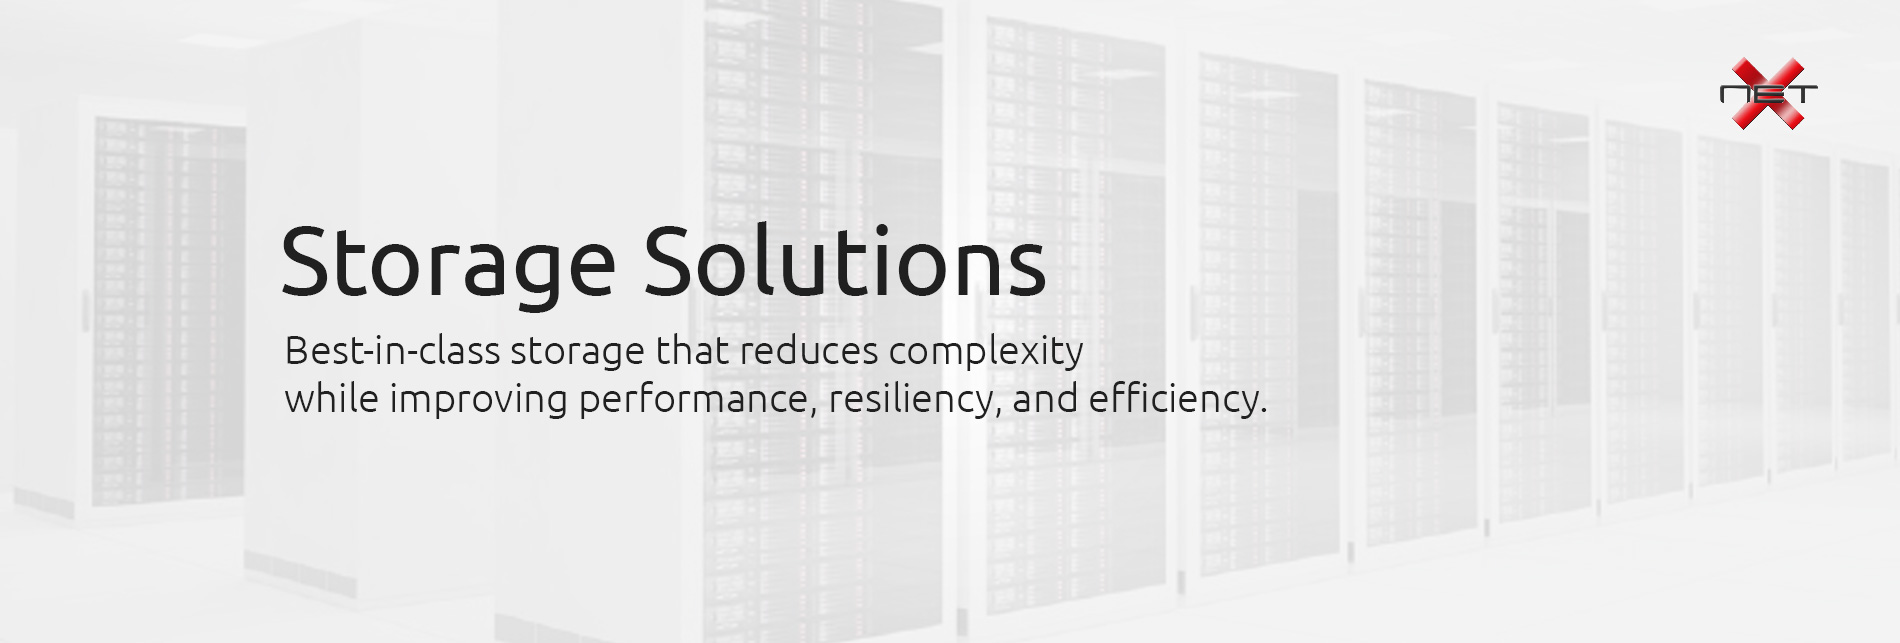 Storage Solutions by NetX Information Systems